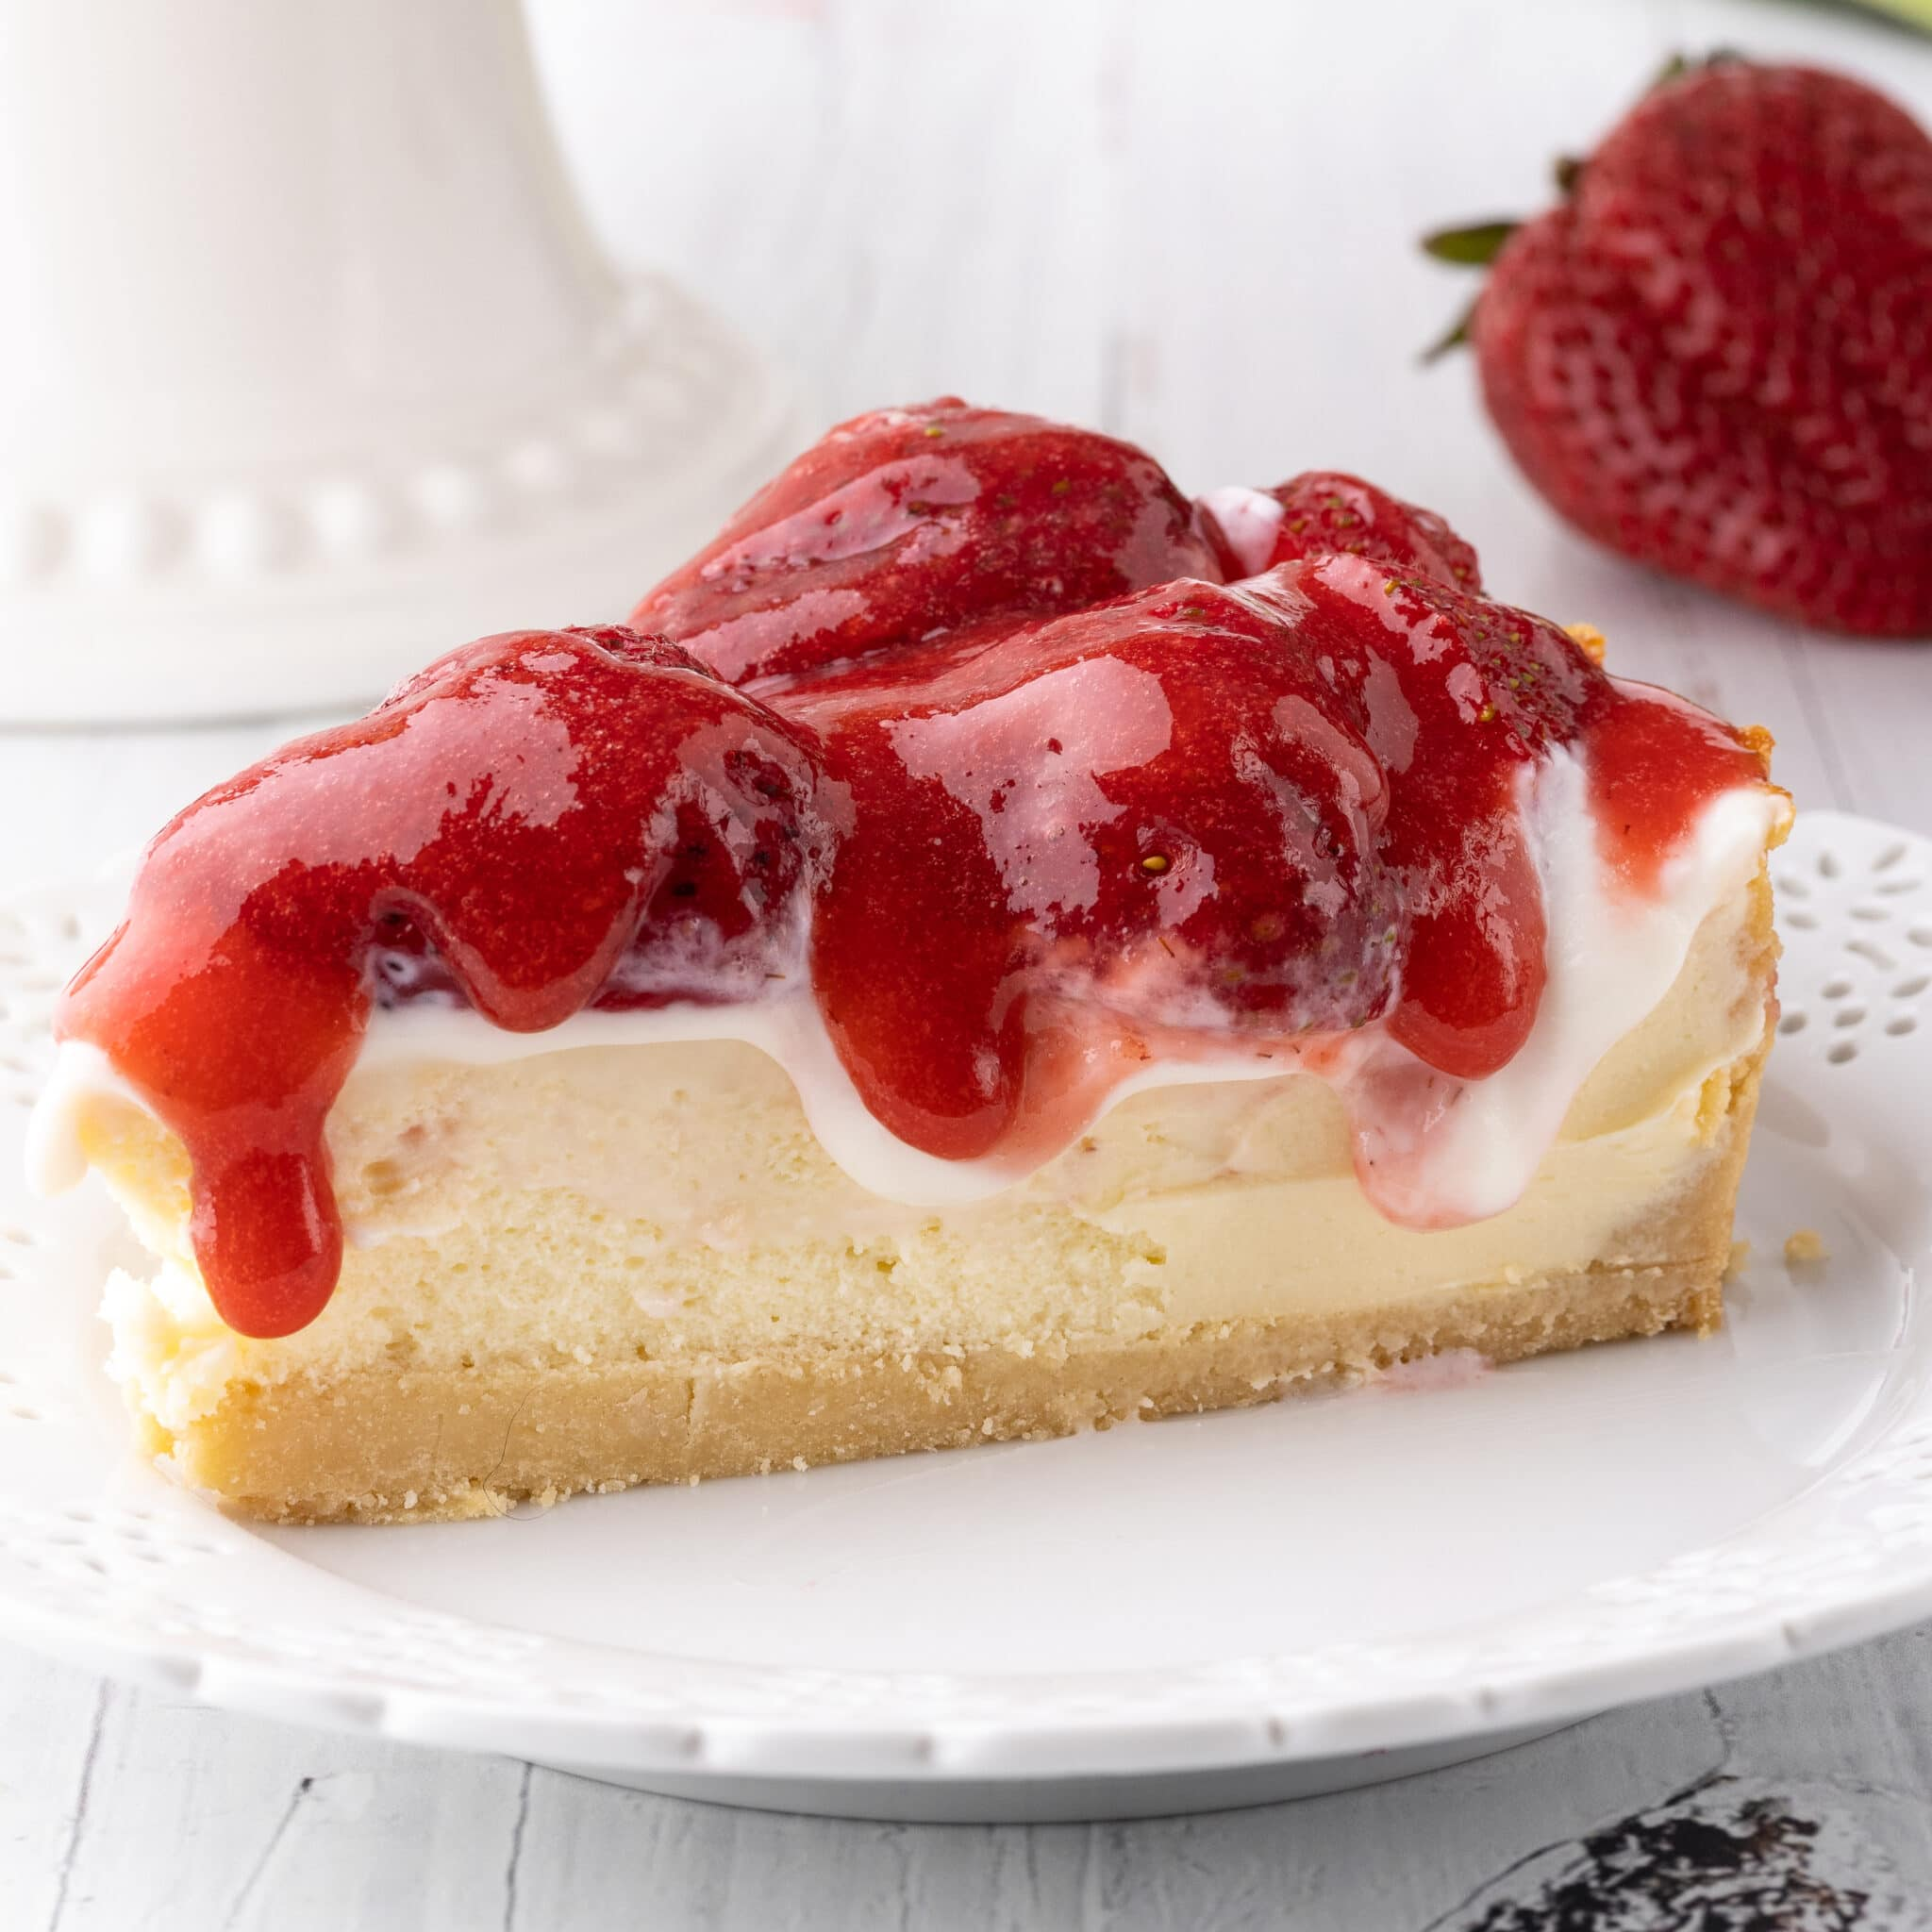 A slice of strawberry cheesecake dripping with sour cream and strawberry sauce topping.